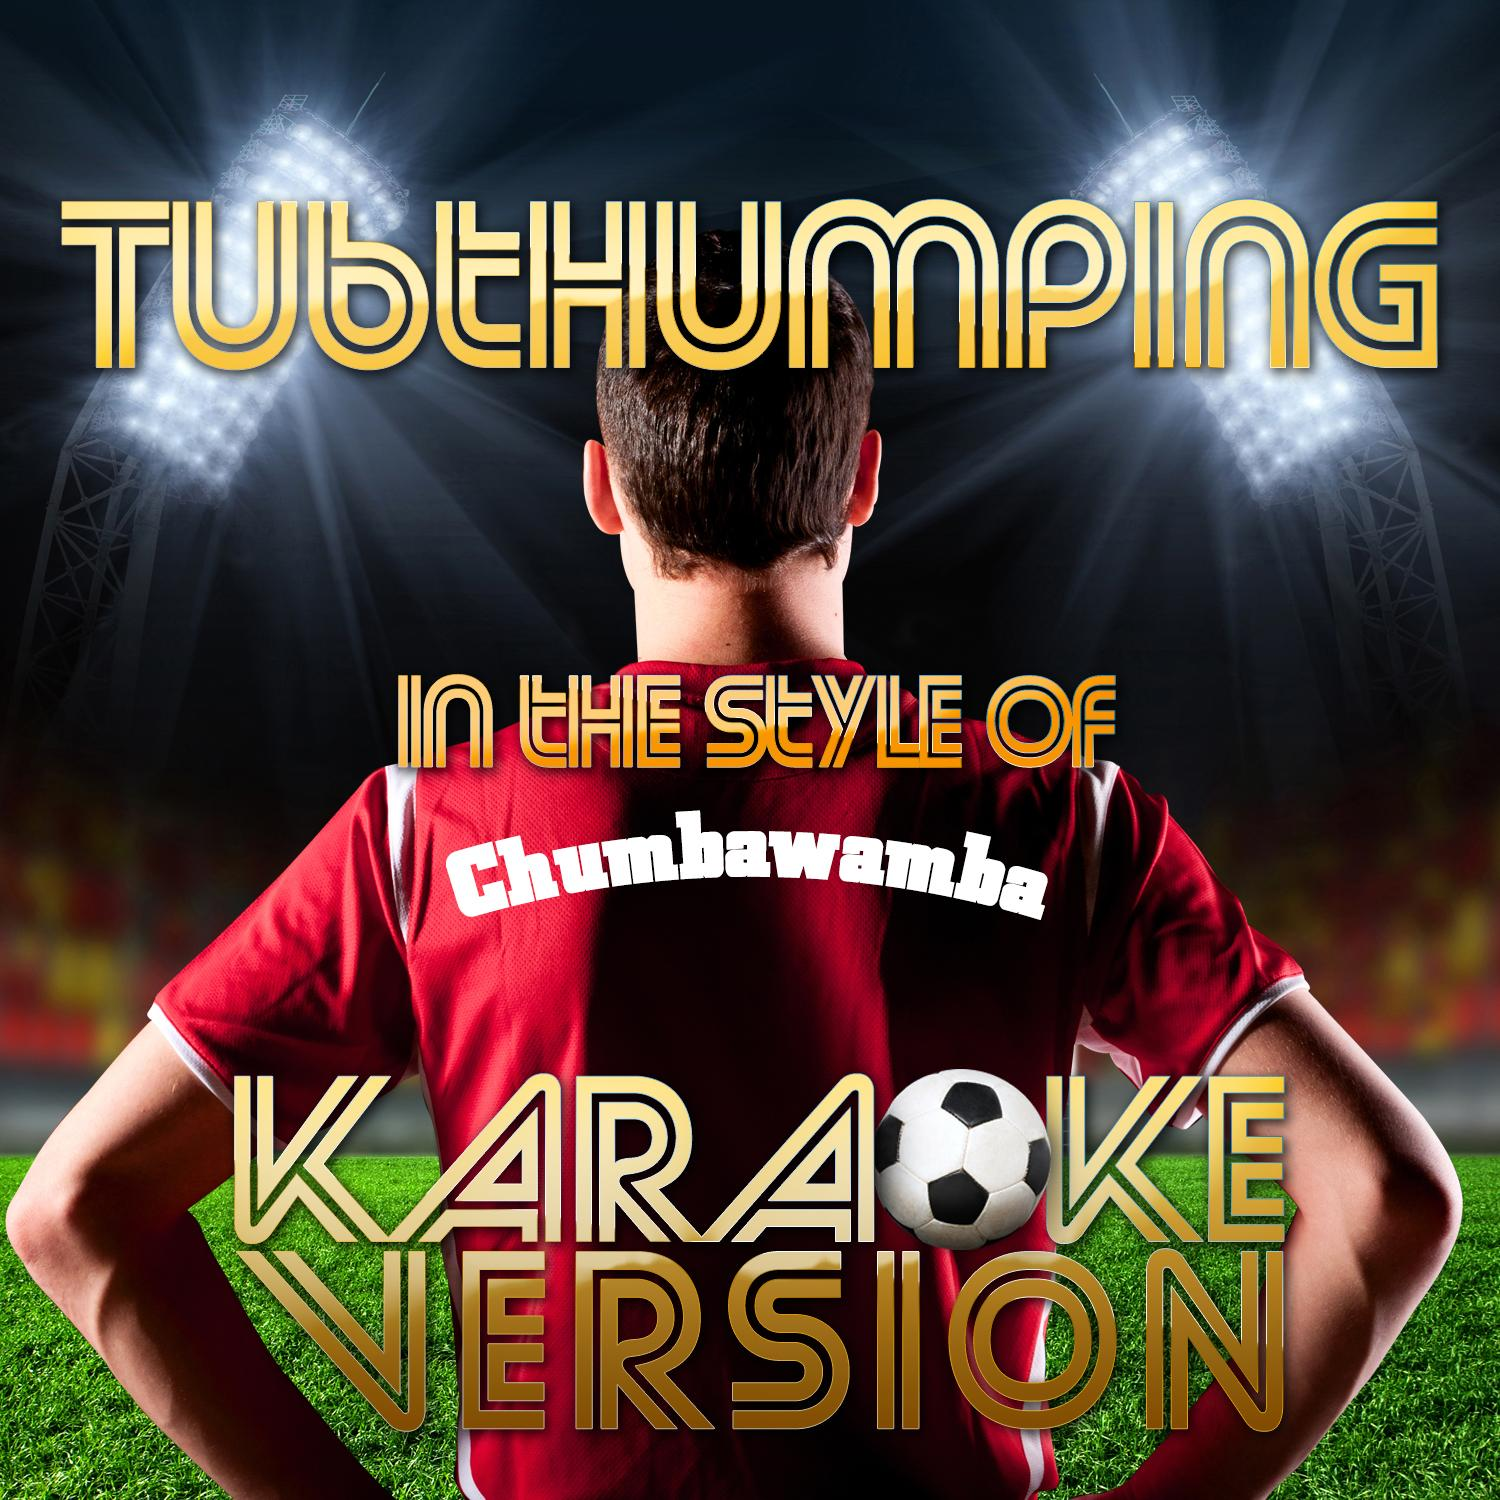 Tubthumping (In the Style of Chumbawamba) [Karaoke Version]